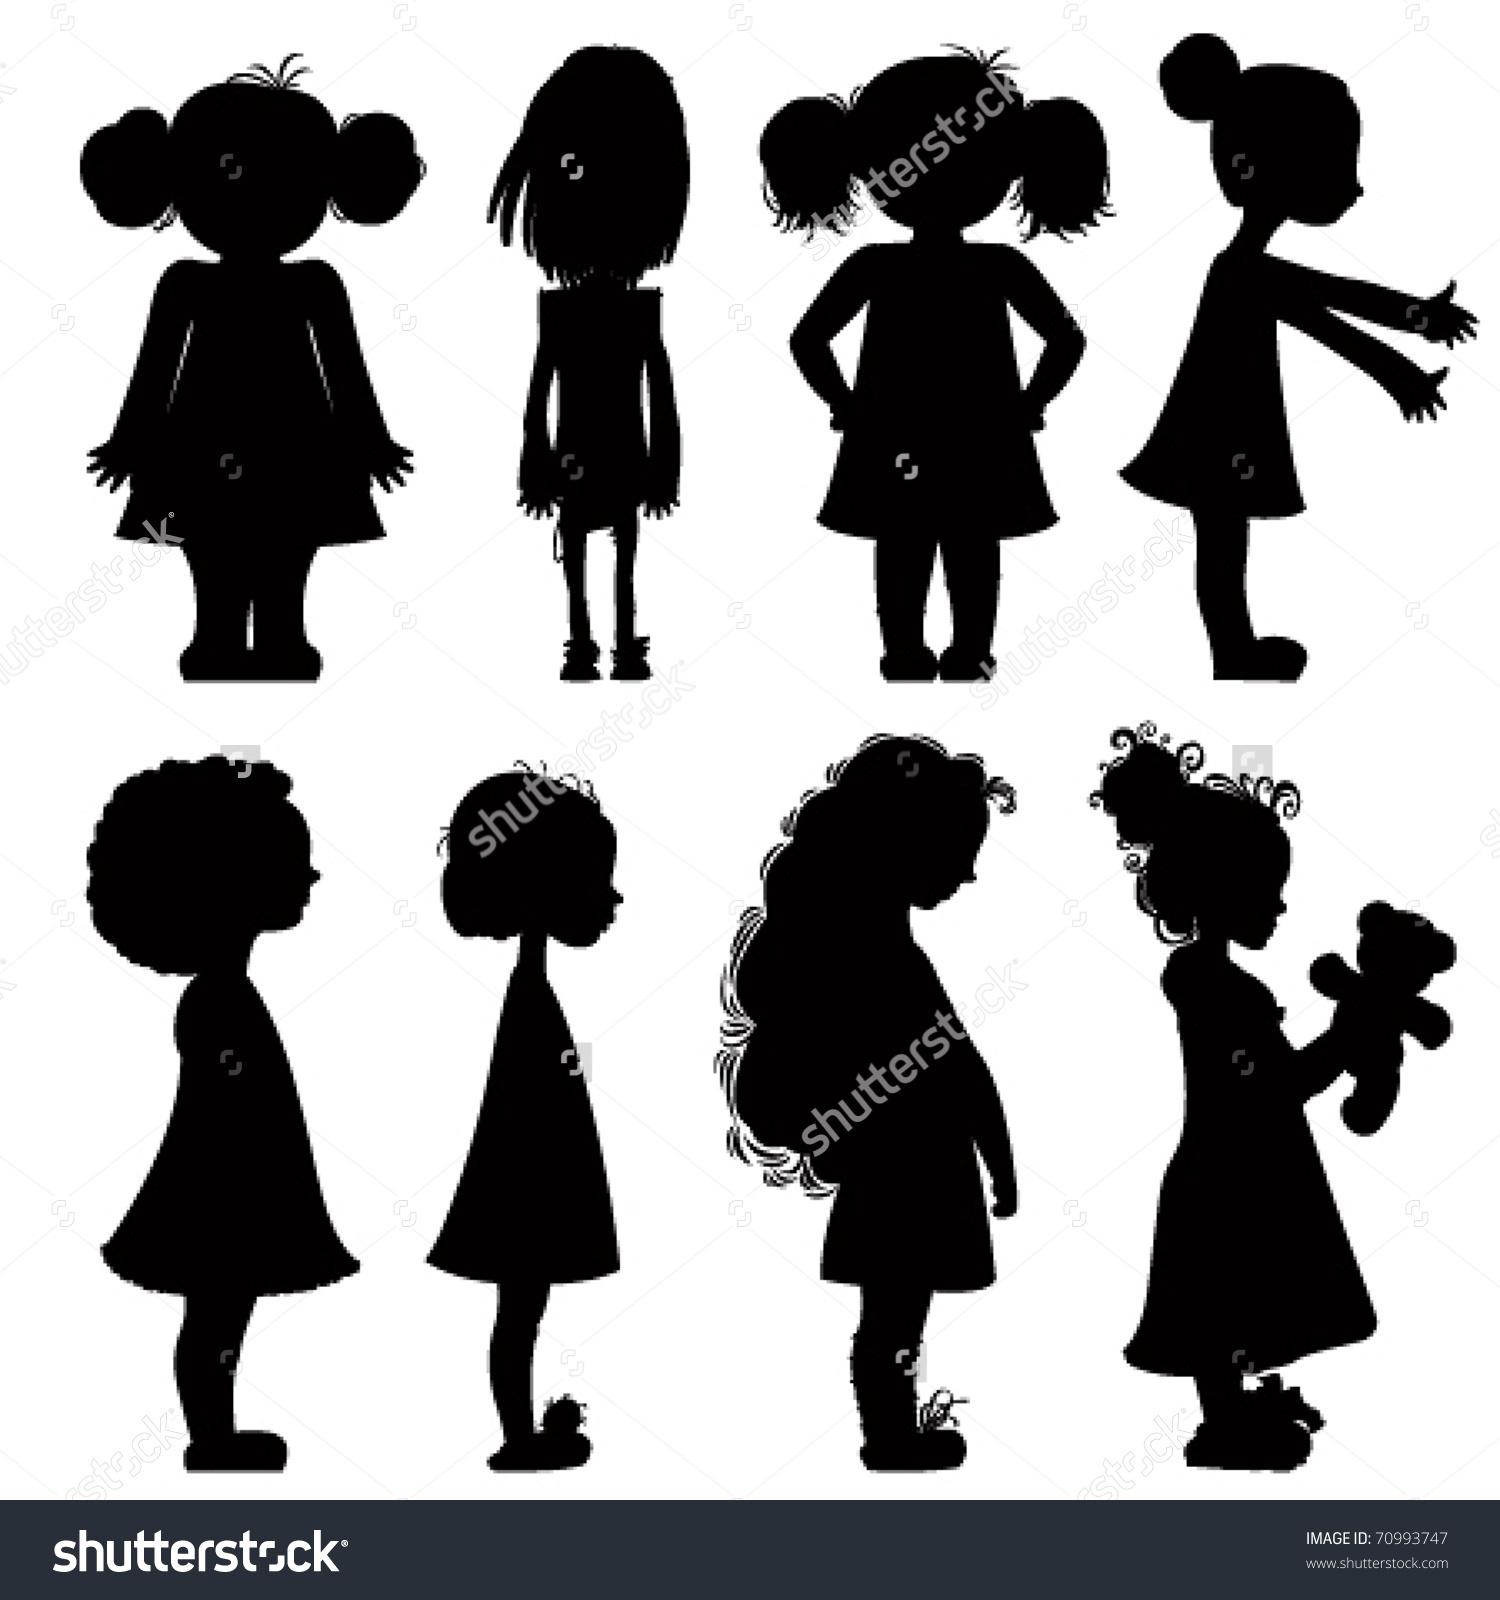 Silhouette Woman Reaching Up Clipart.